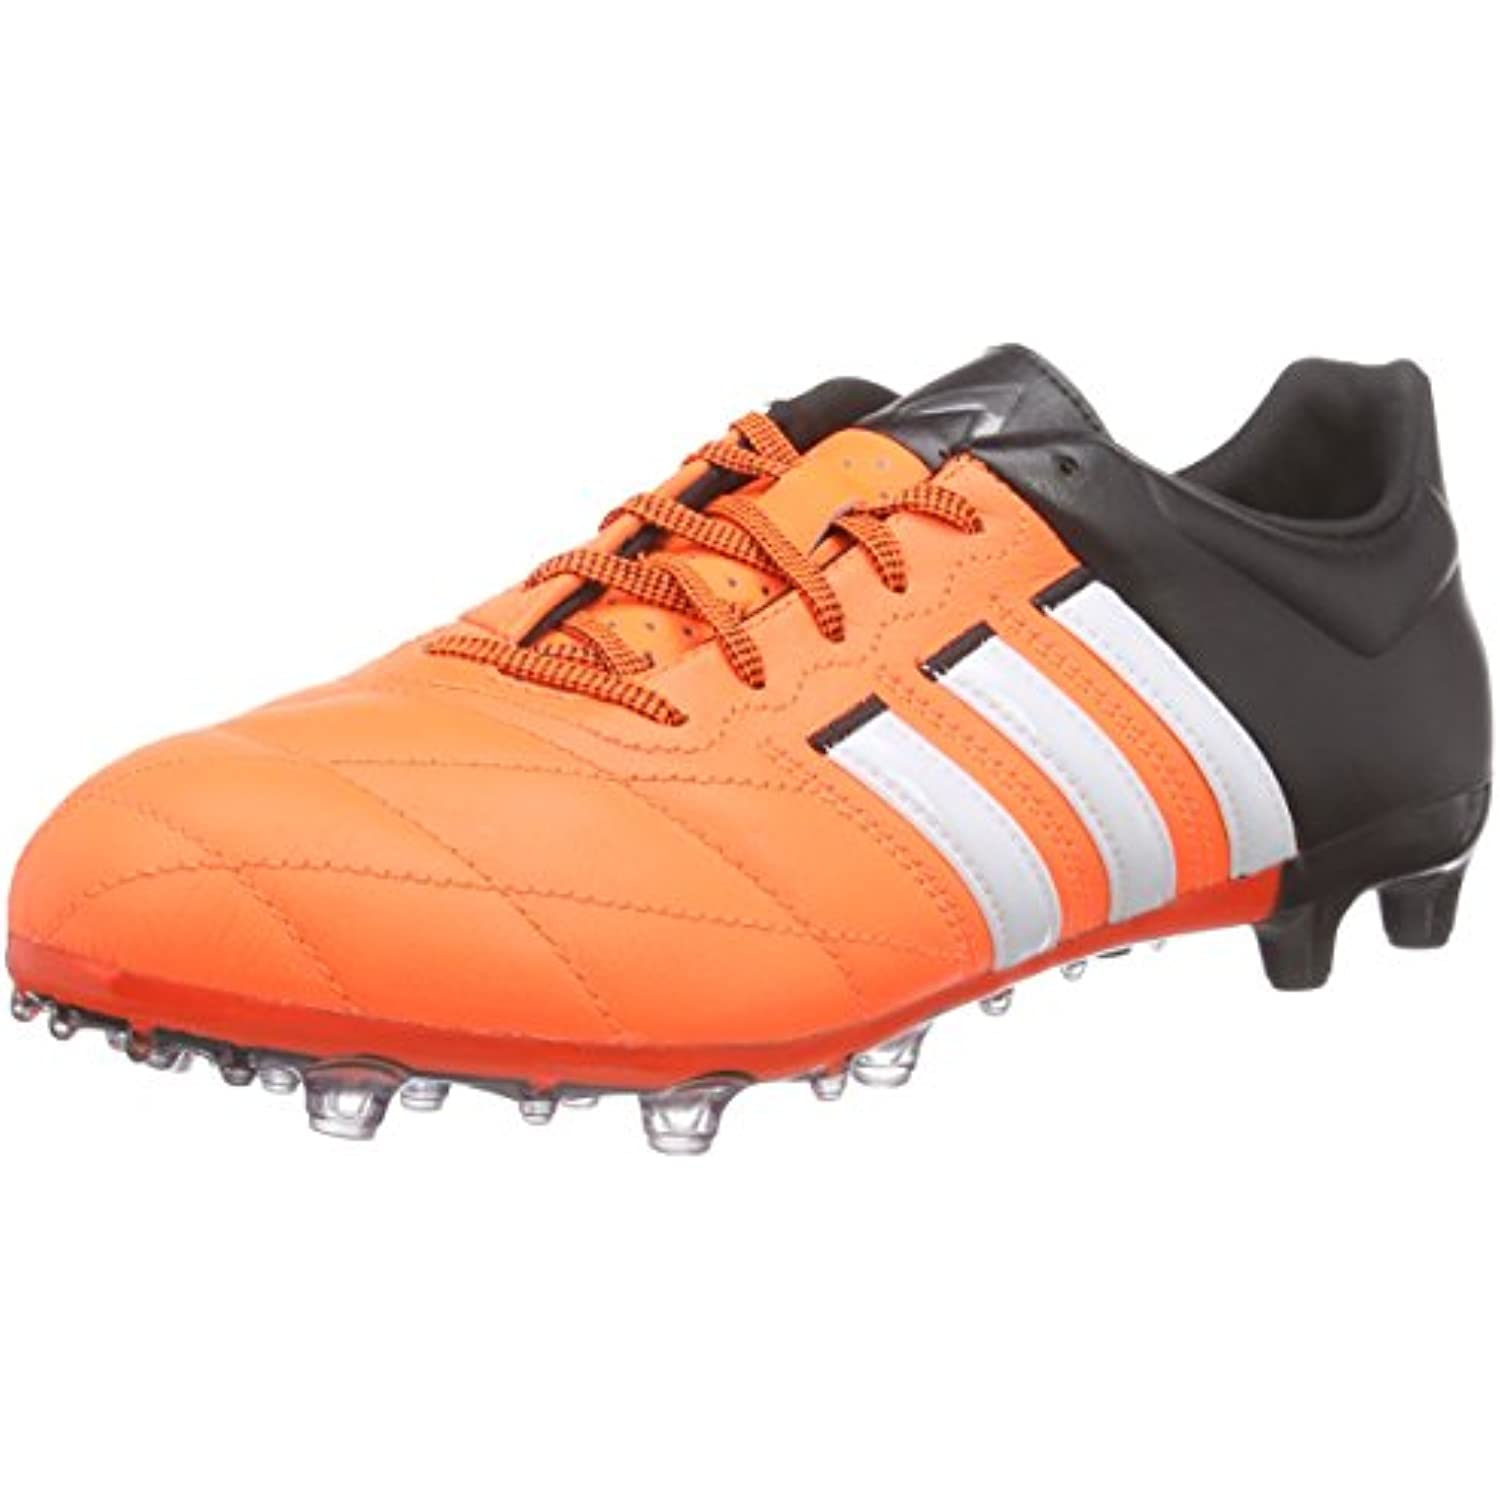 Adidas Ace15.2 FG/AG Leather, Chaussures de Football Homme - - - B016223L3M - 93ea55